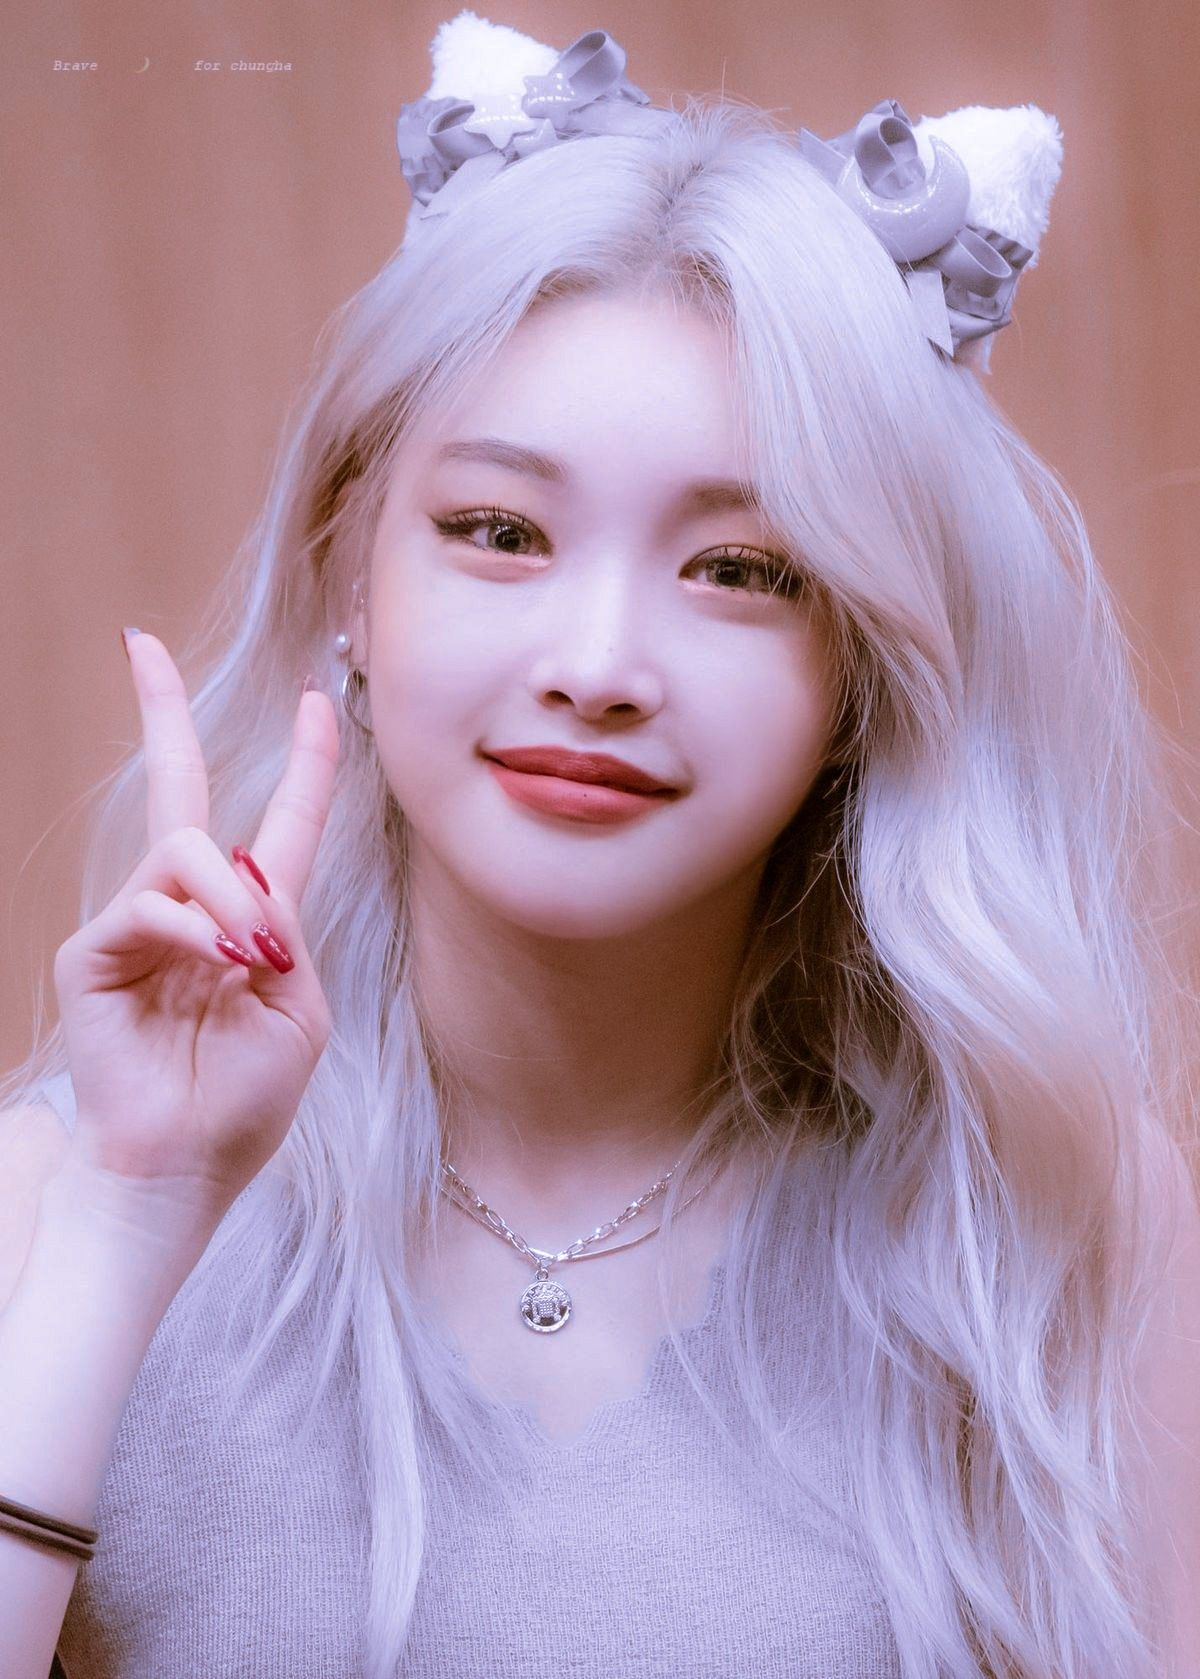 Chungha's agency confirms it has tested positive for COVID-19